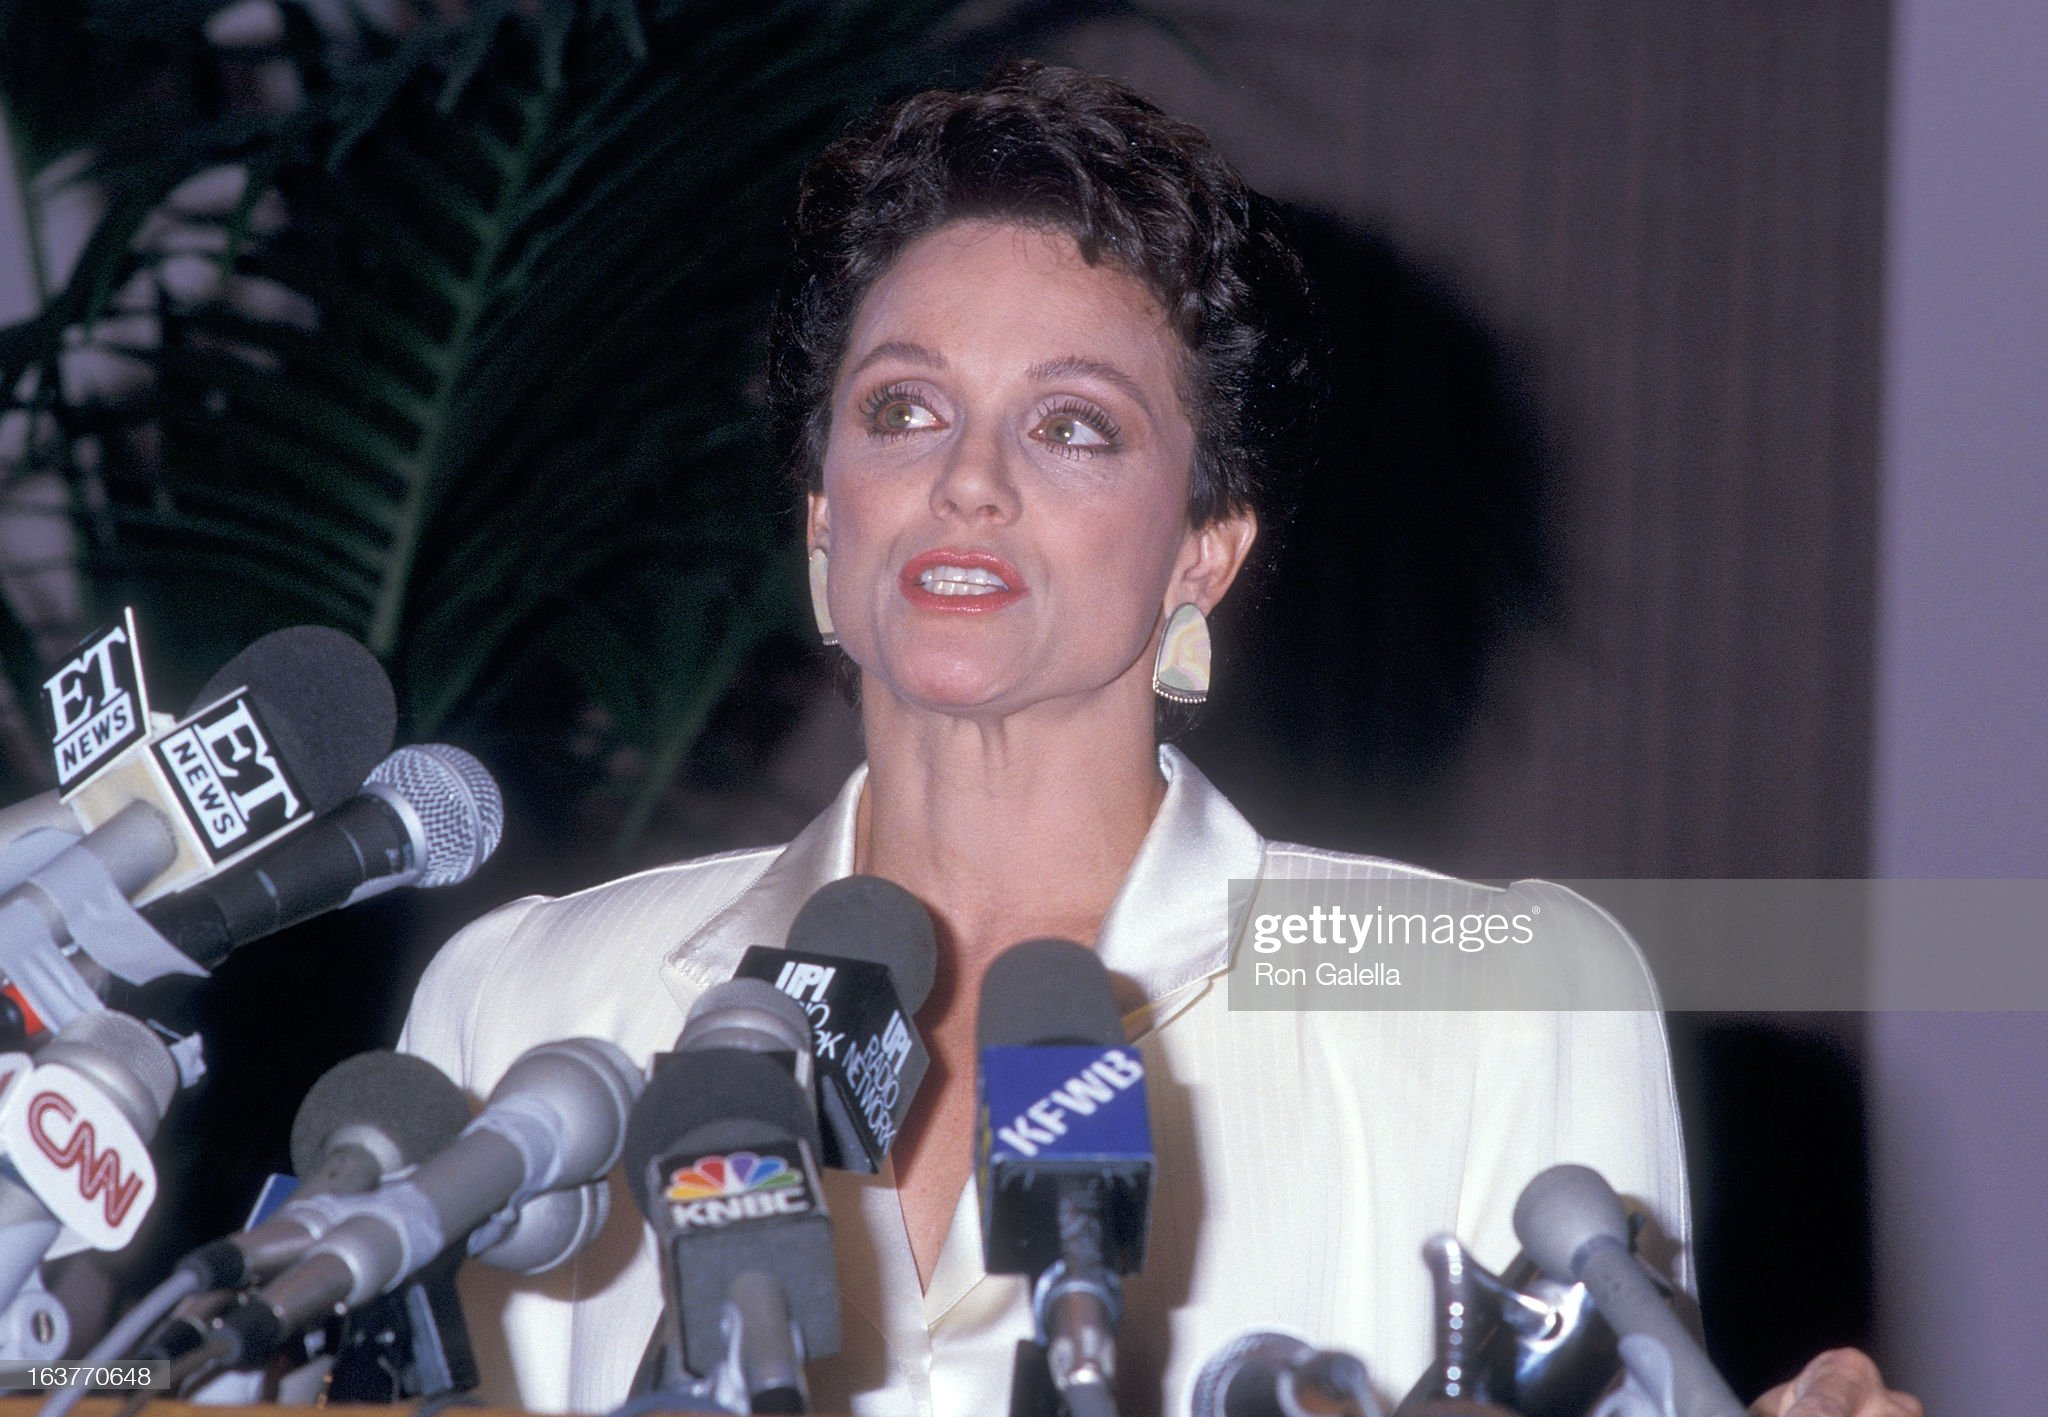 actress-valerie-harper-addresses-the-press-to-speak-about-being-fired-picture-id163770648